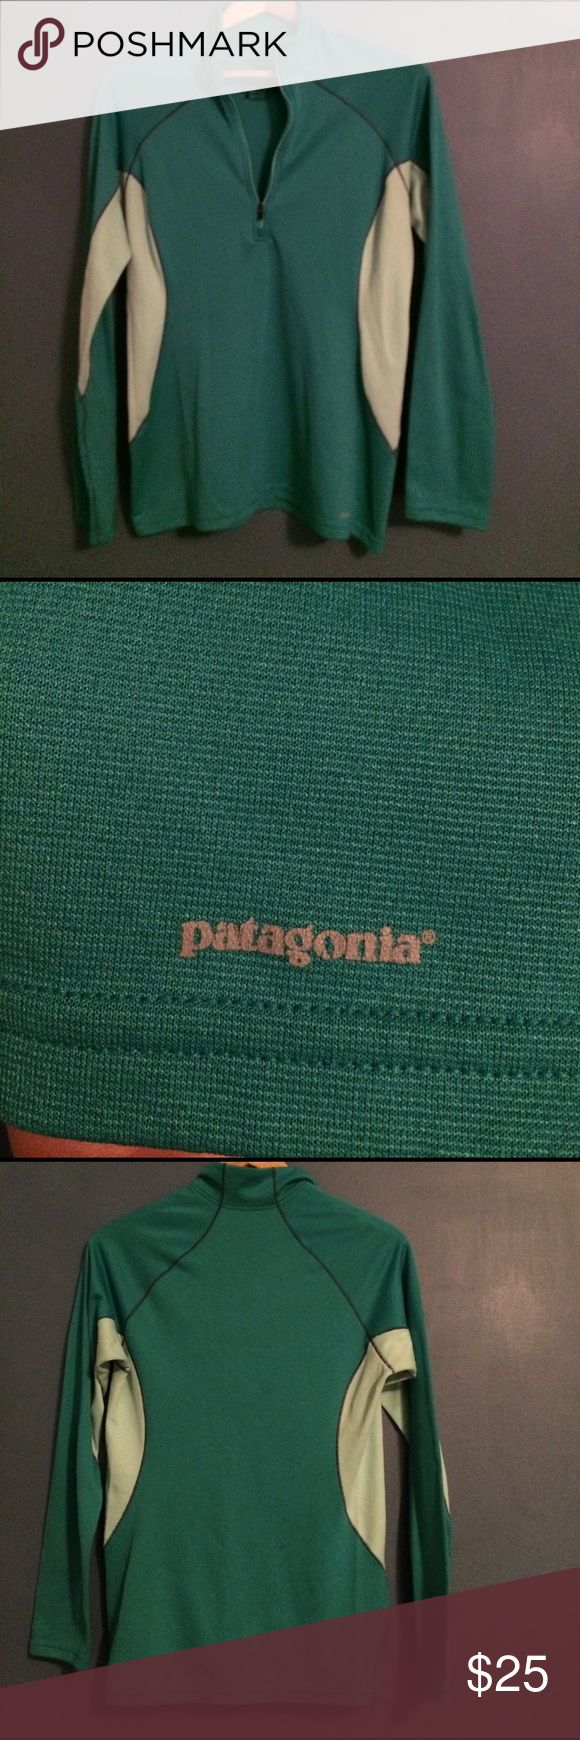 Patagonia women's long sleeve Patagonia women's long sleeve top. Pretty turquoise/green with light blue sides. 1/4 zip up. Perfect for a busy day of running around. Patagonia Tops Tees - Long Sleeve